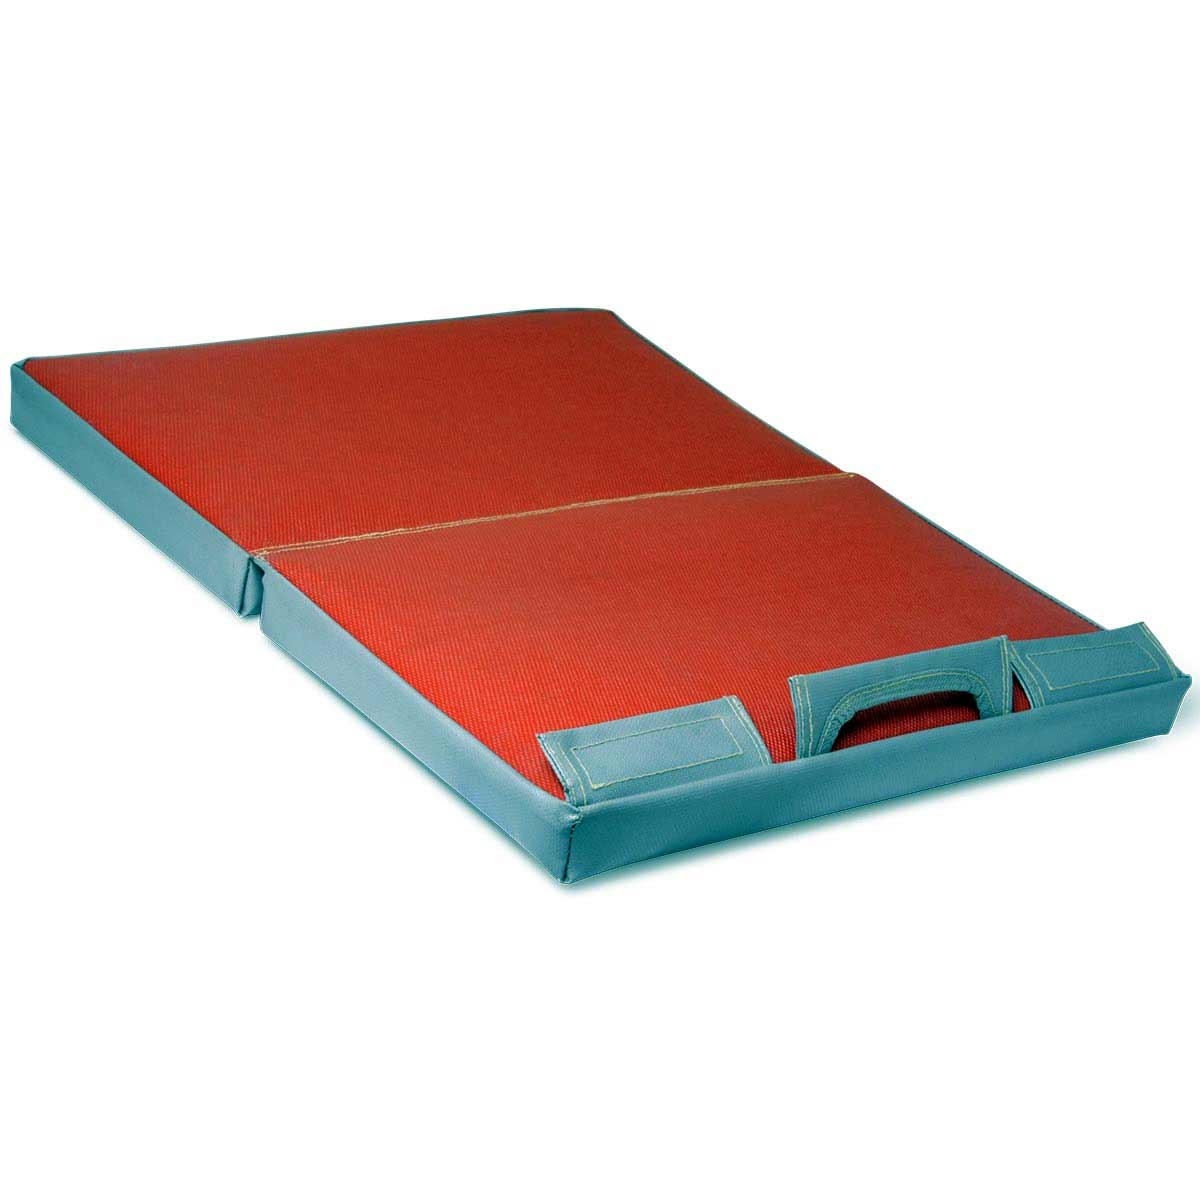 SMASHPAD WELDING INTER-CONNECTABLE WELDING PAD. Pack 1. AP3015-RG